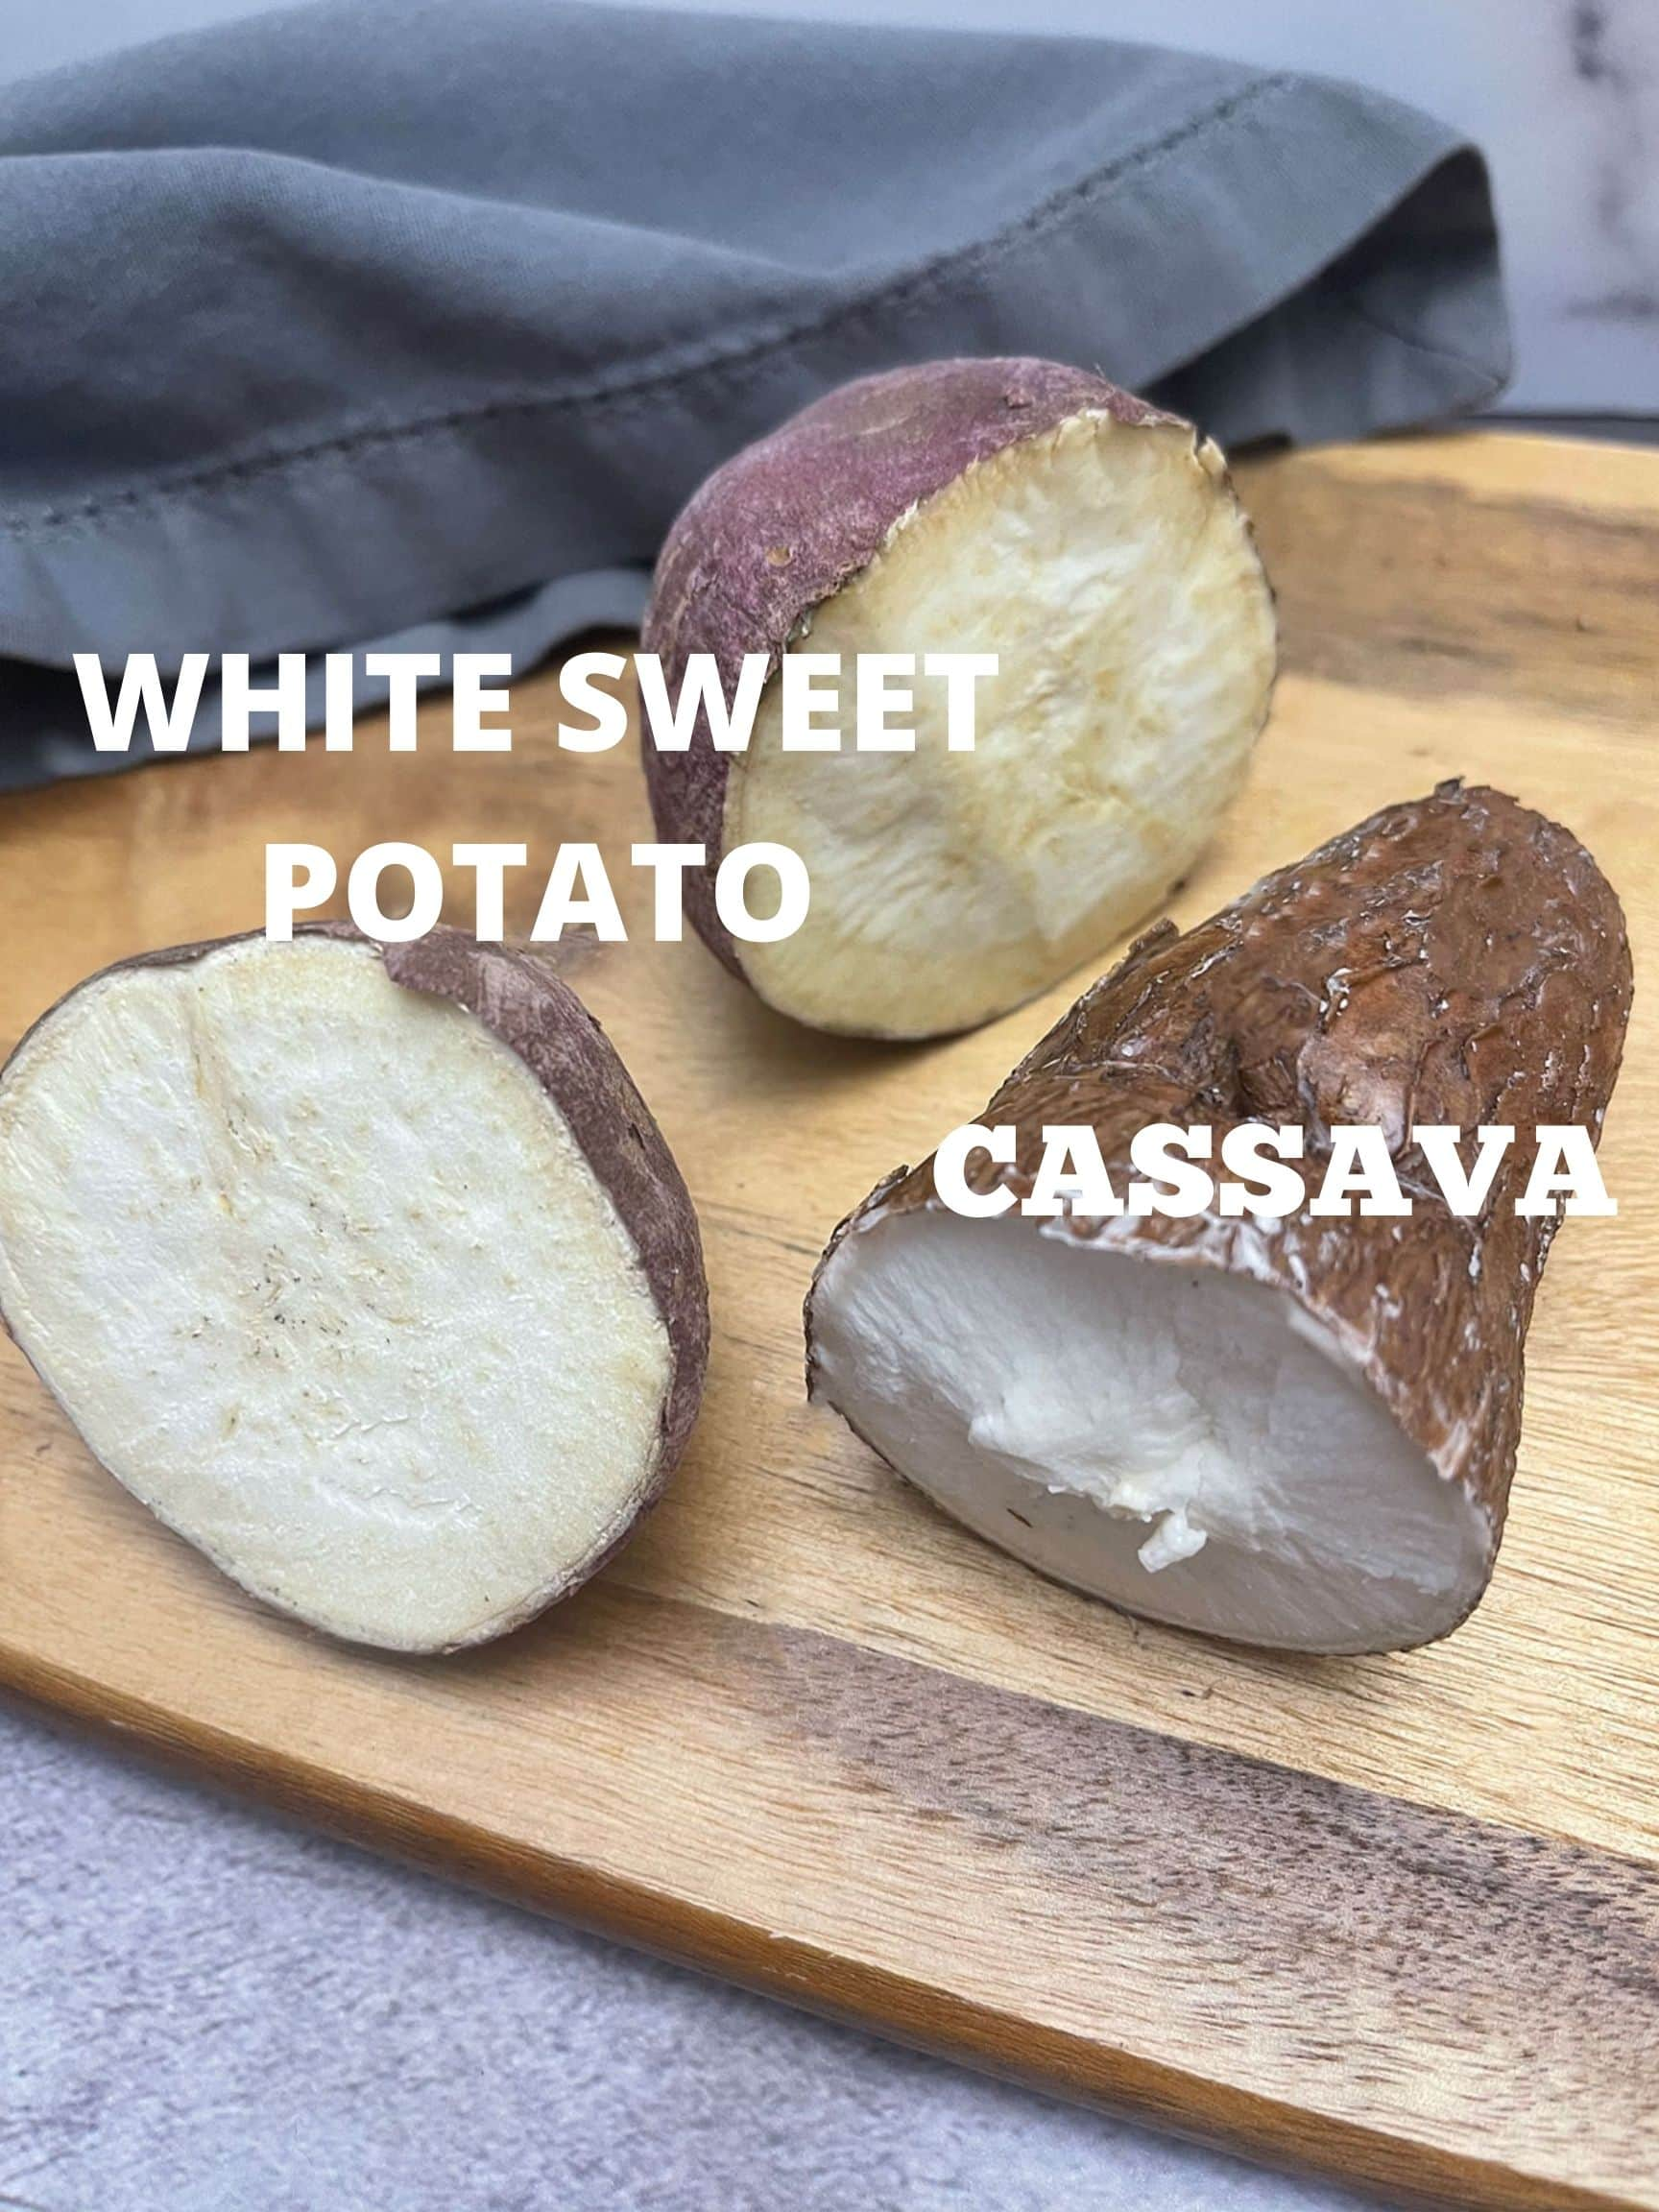 sweet potato and cassava on cutting board